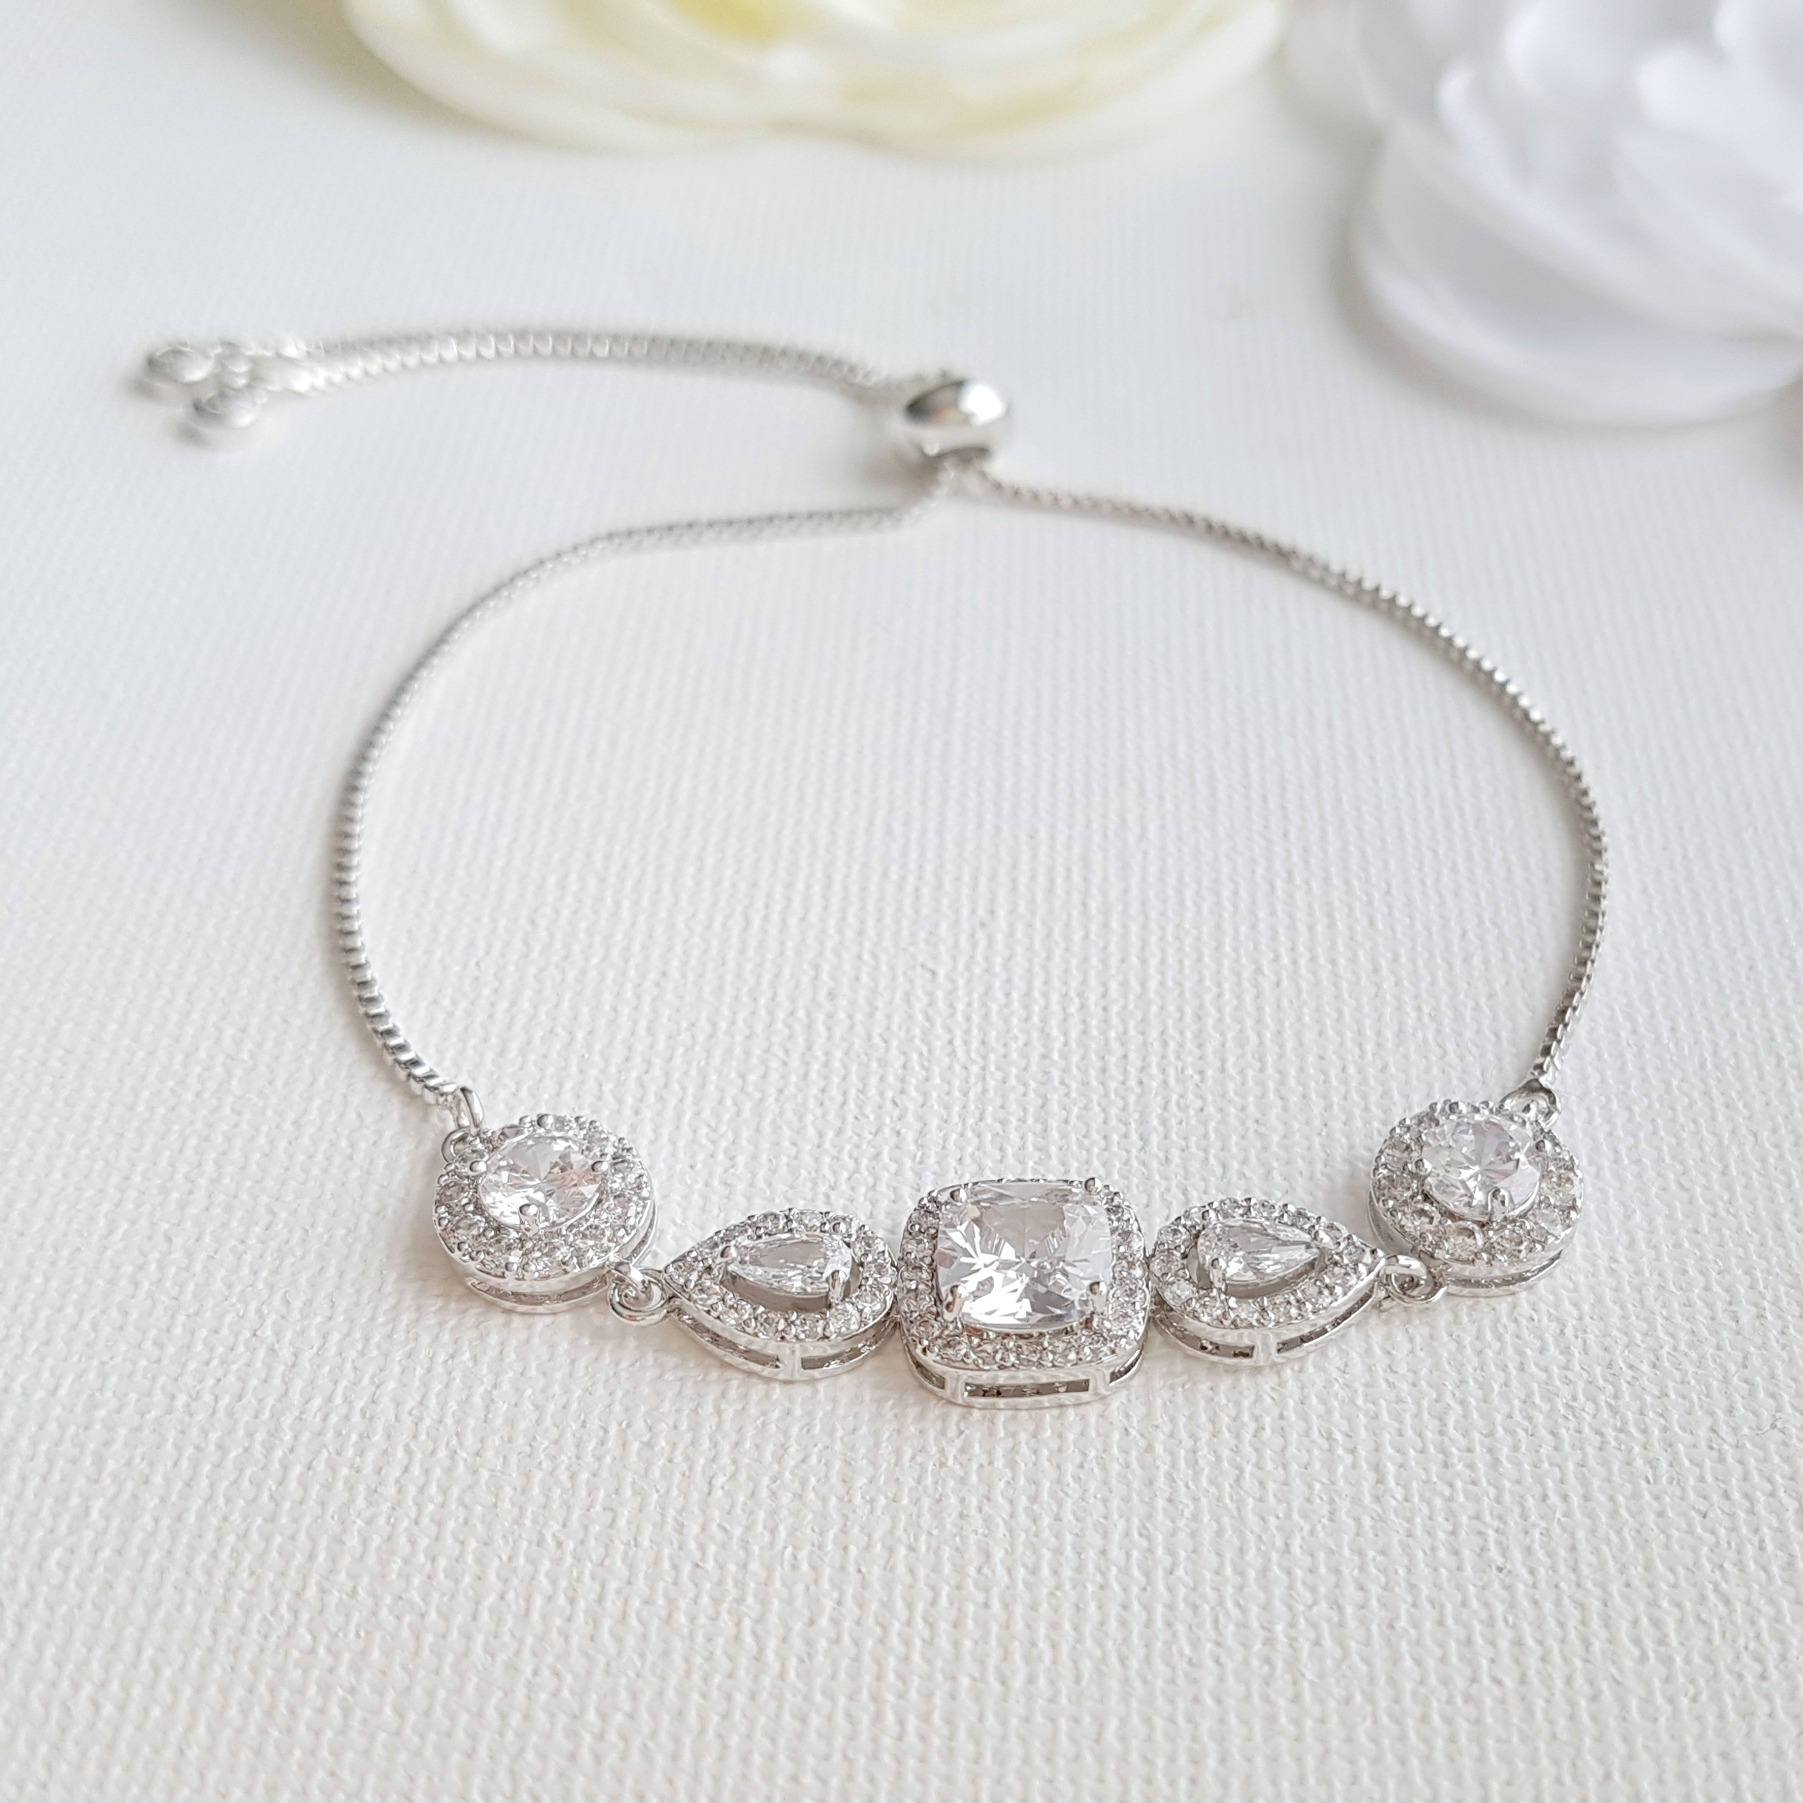 Cubic Zirconia Wedding Bracelet- Gianna - PoetryDesigns